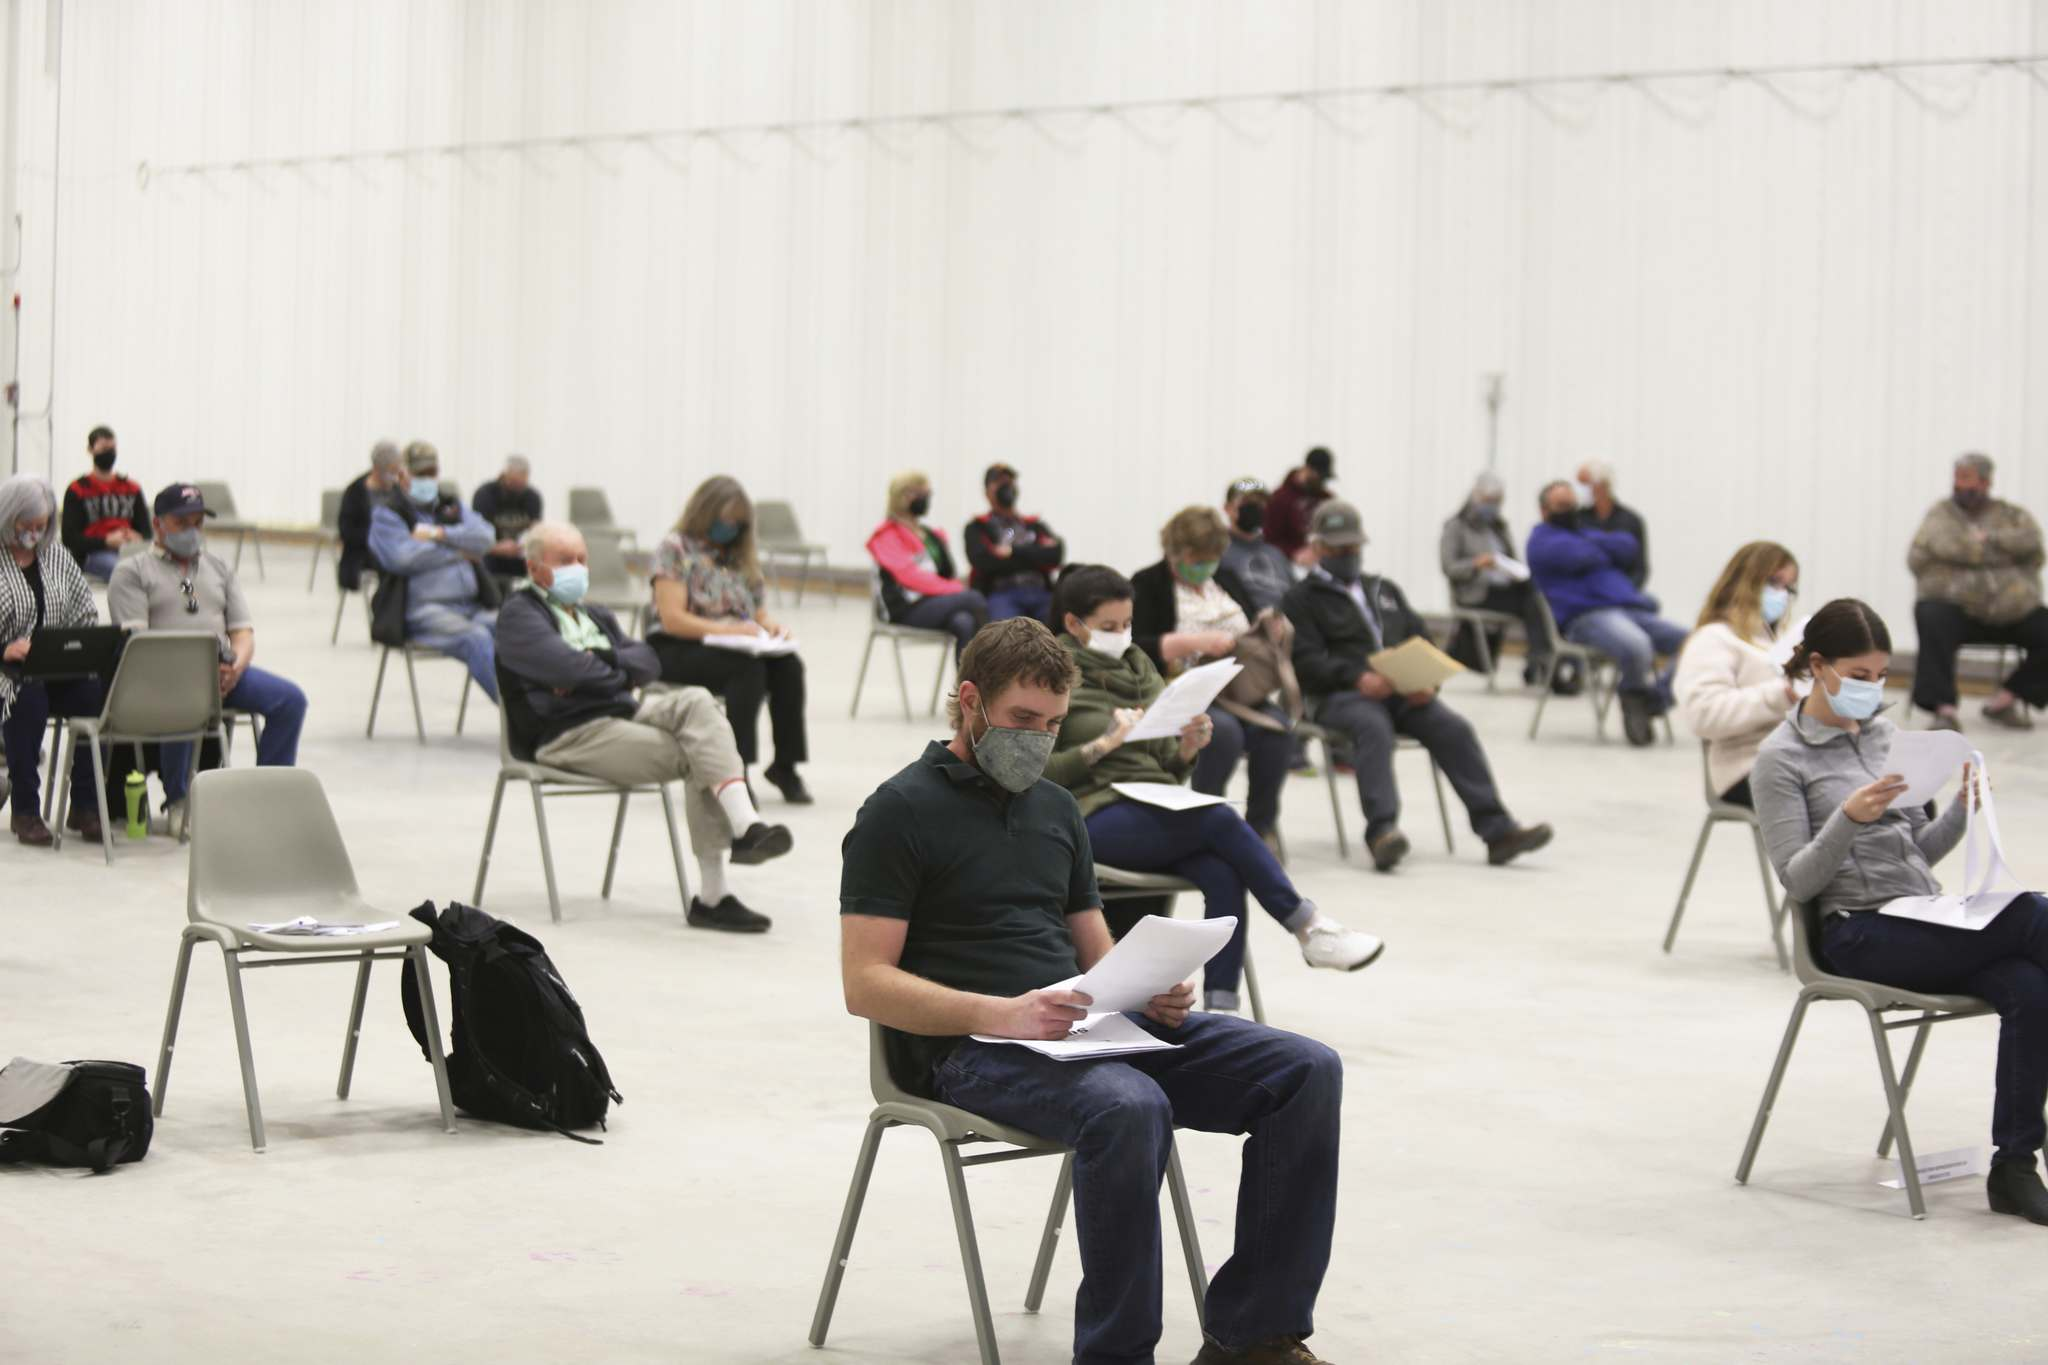 Rivers residents and Western Asphalt Products representatives take a seat inside the Riverdale Community Centre on Tuesday evening for the municipality's public hearing on the company's application to set up aggregate mining operations just south of town. (Kyle Darbyson/The Brandon Sun)</p></p>